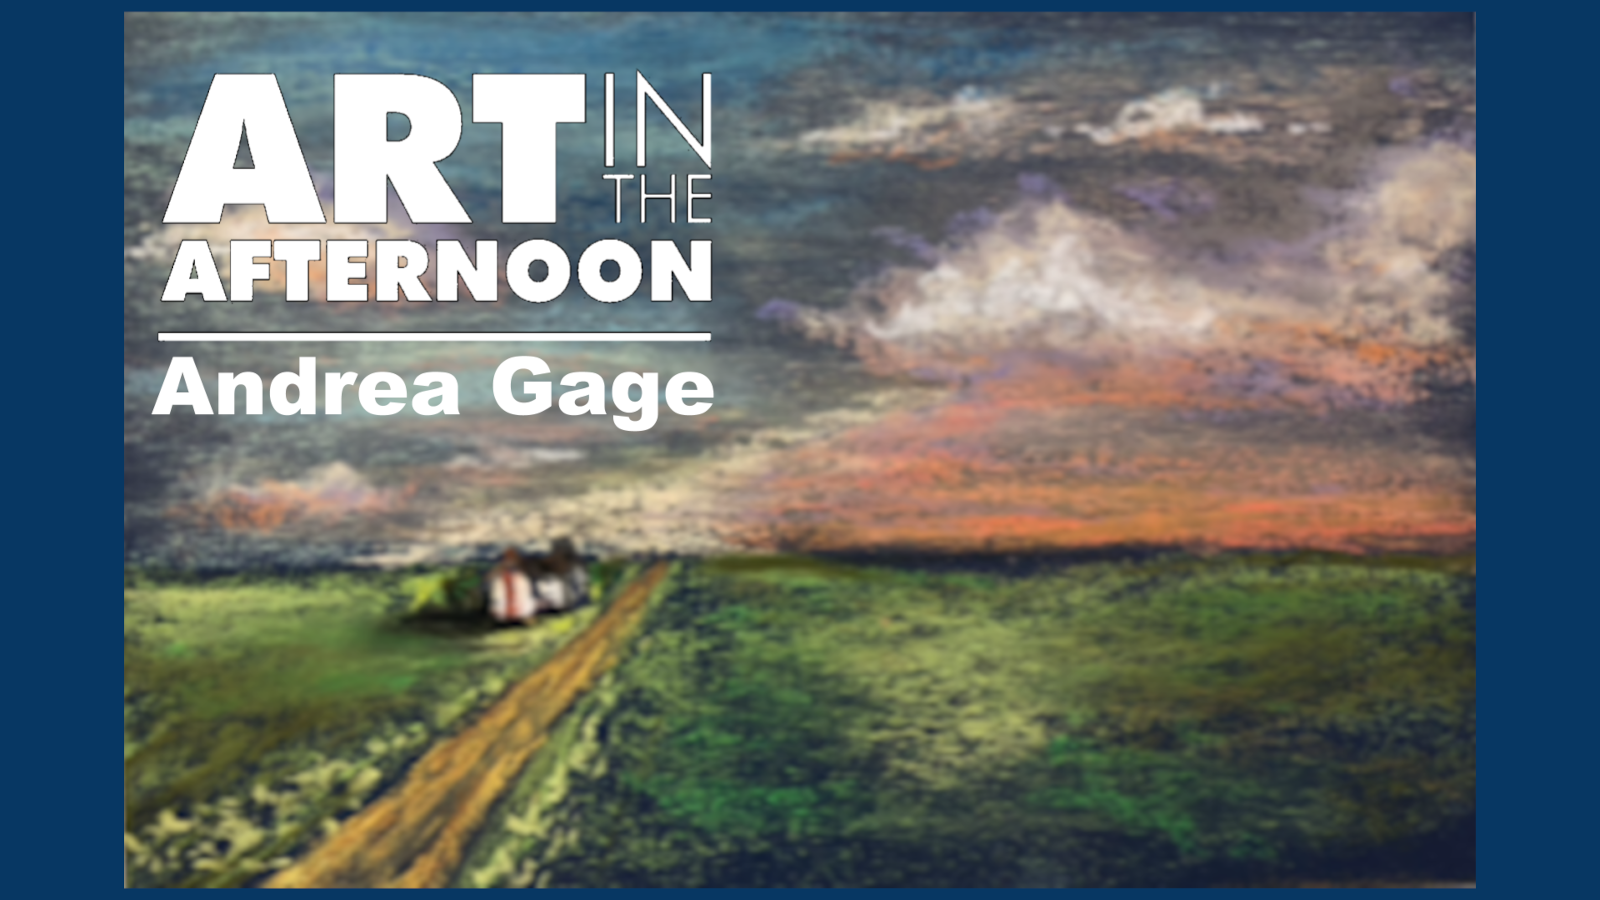 Andrea Gage - Art in the Afternoon